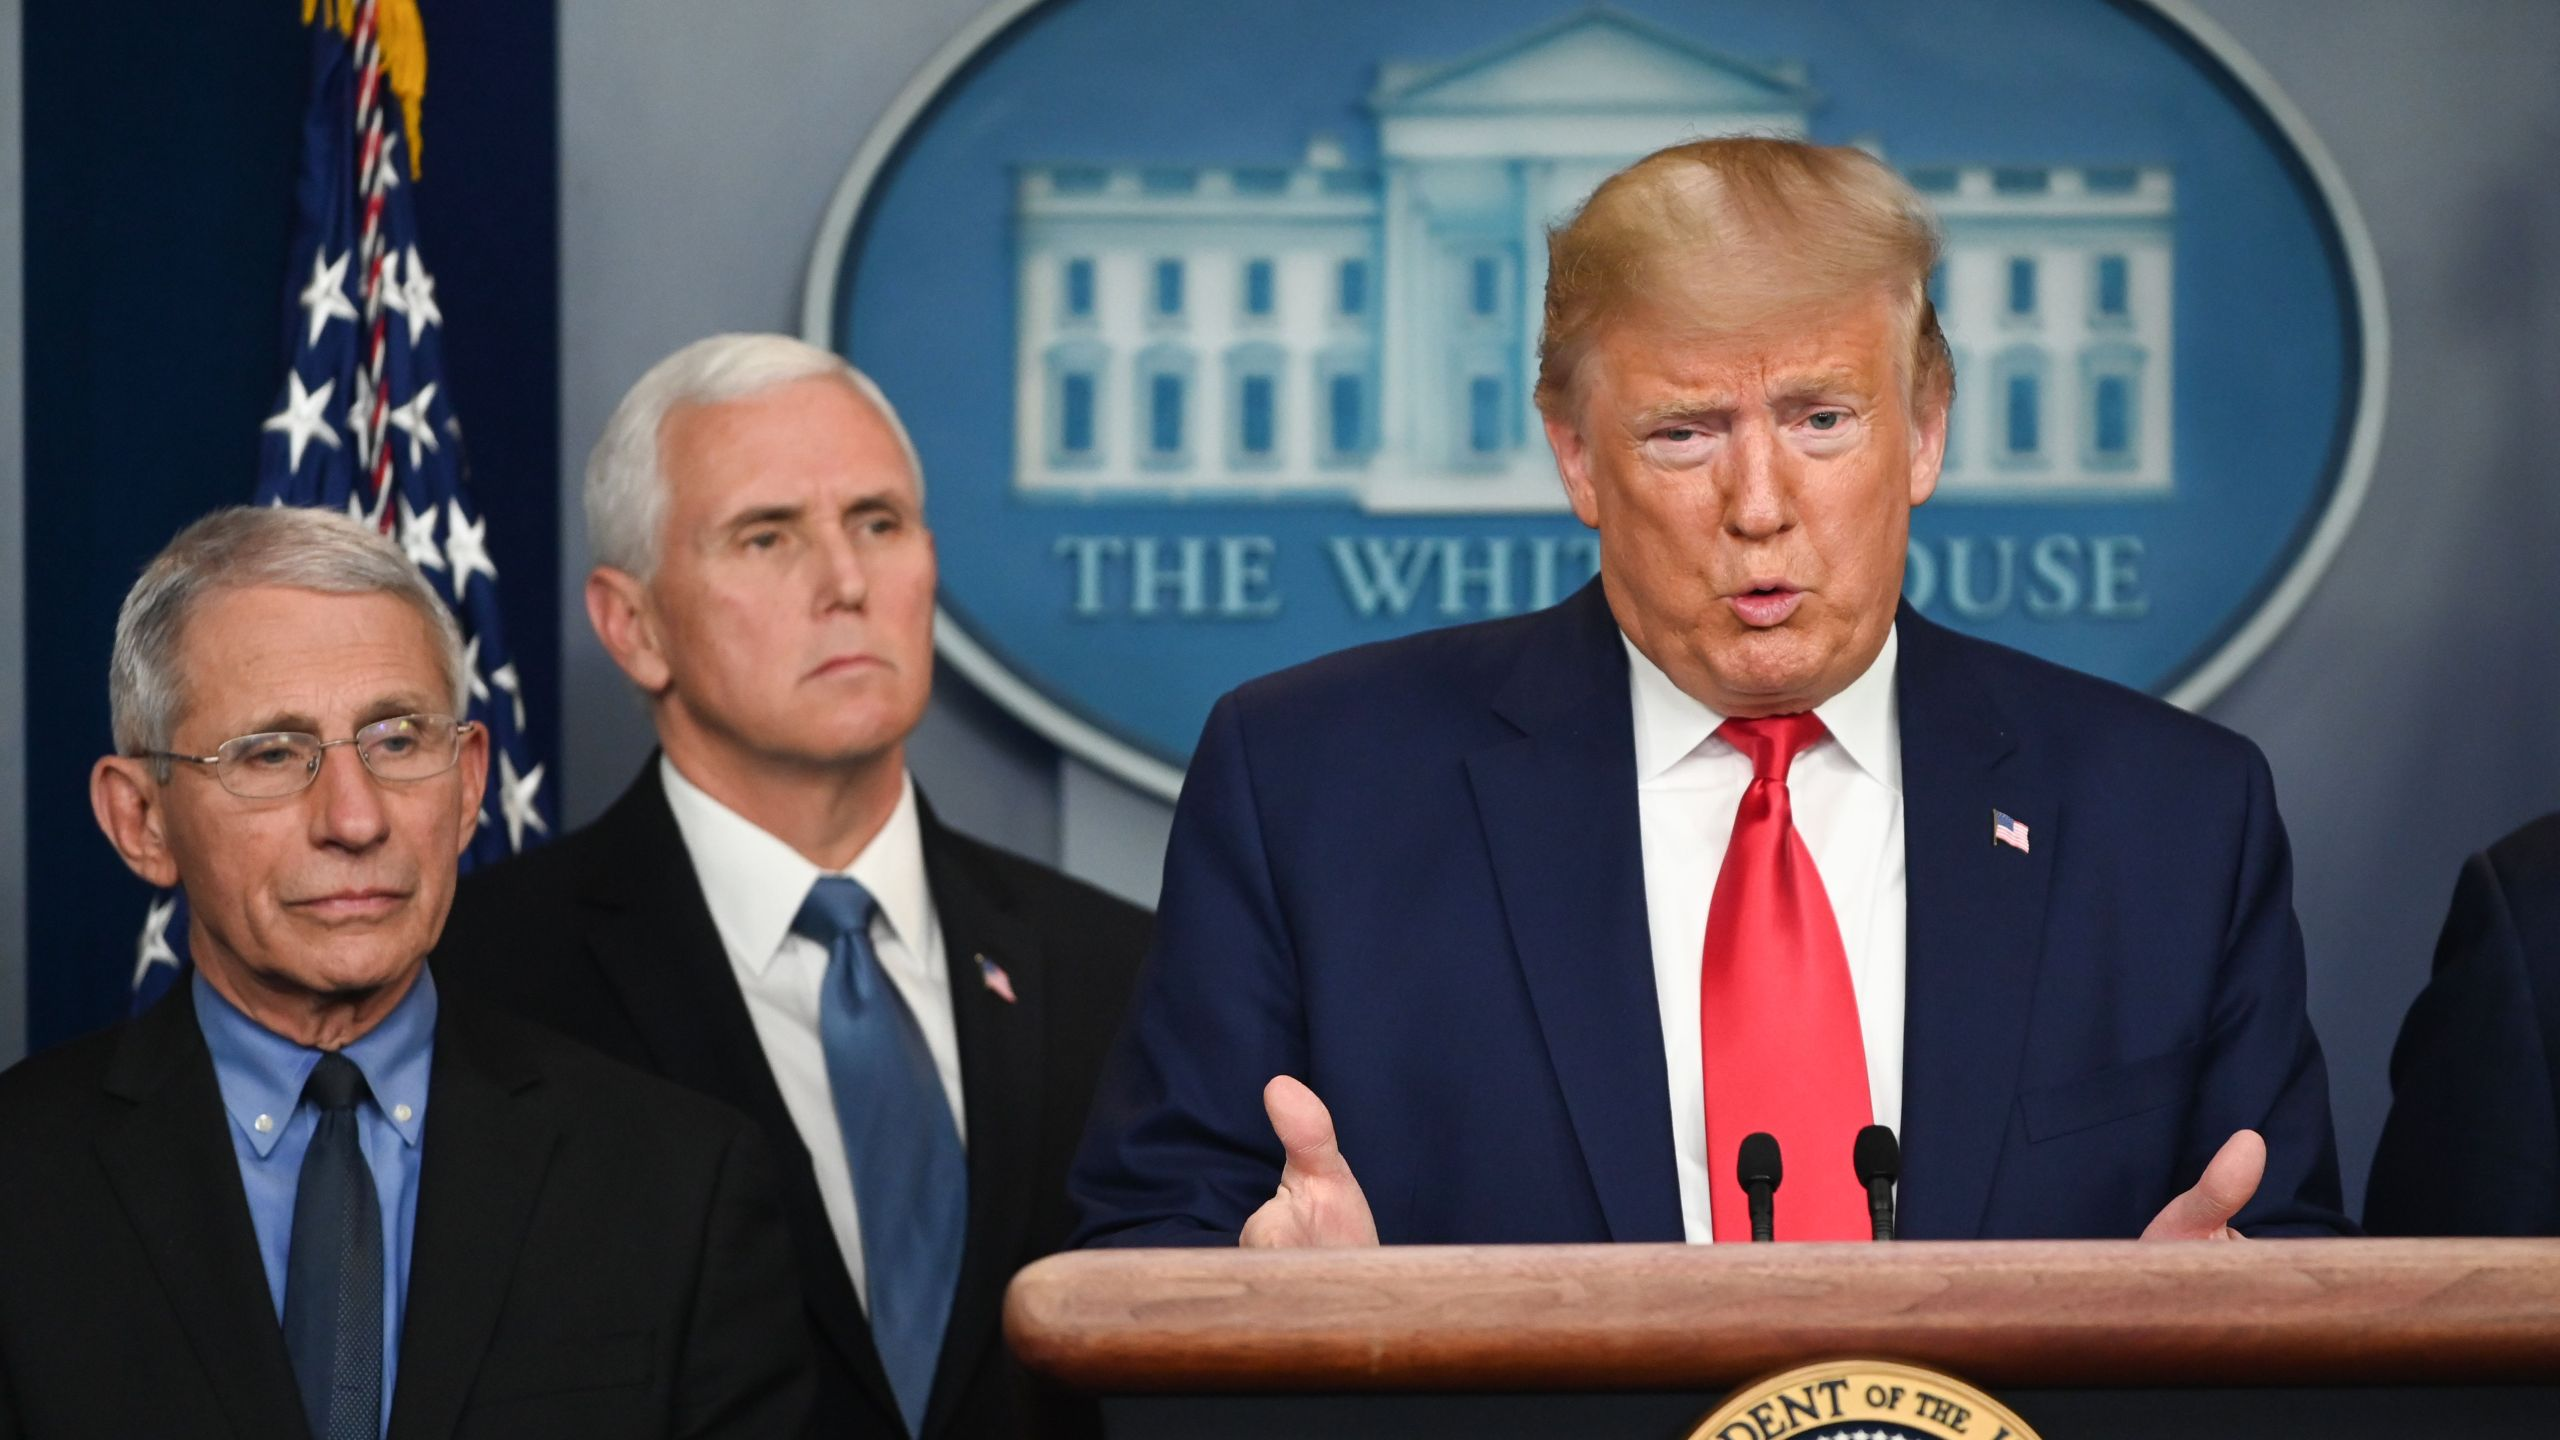 Donald Trump speaks during a press conference on the coronavirus outbreak as Anthony Fauci, director of the National Institute of Allergy and Infectious Diseases at the National Institutes of Health, and Vice President Mike Pence look on at the White House in Washington, D.C. on Feb. 29, 2020. (ROBERTO SCHMIDT/AFP via Getty Images)